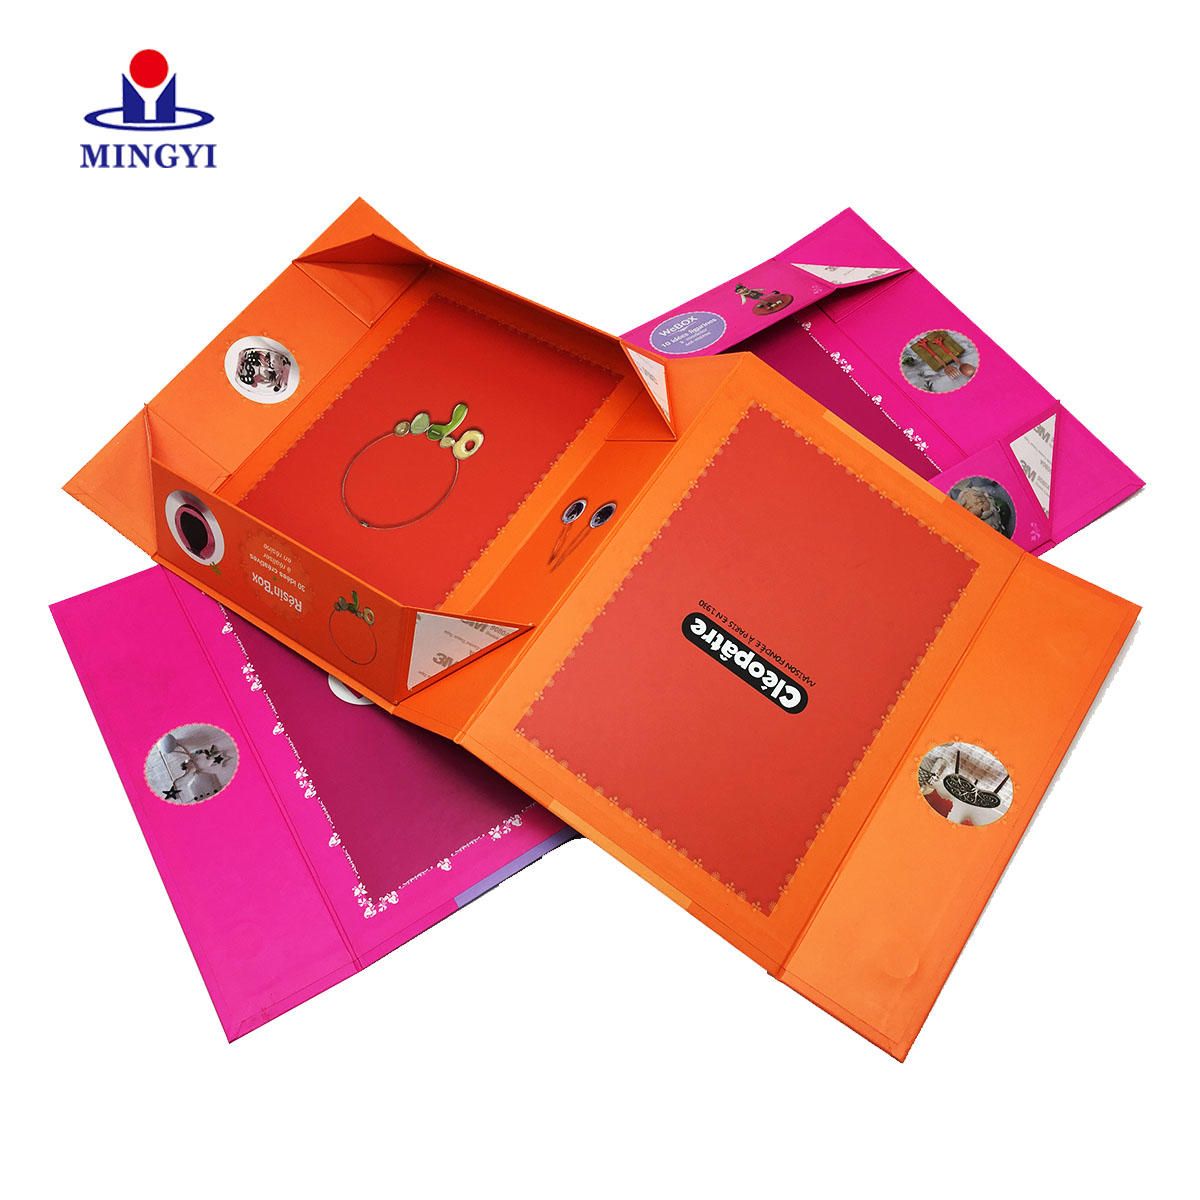 Custom rigid collapsible sex toy packaging boxes with high quality cmky printing customized inside material